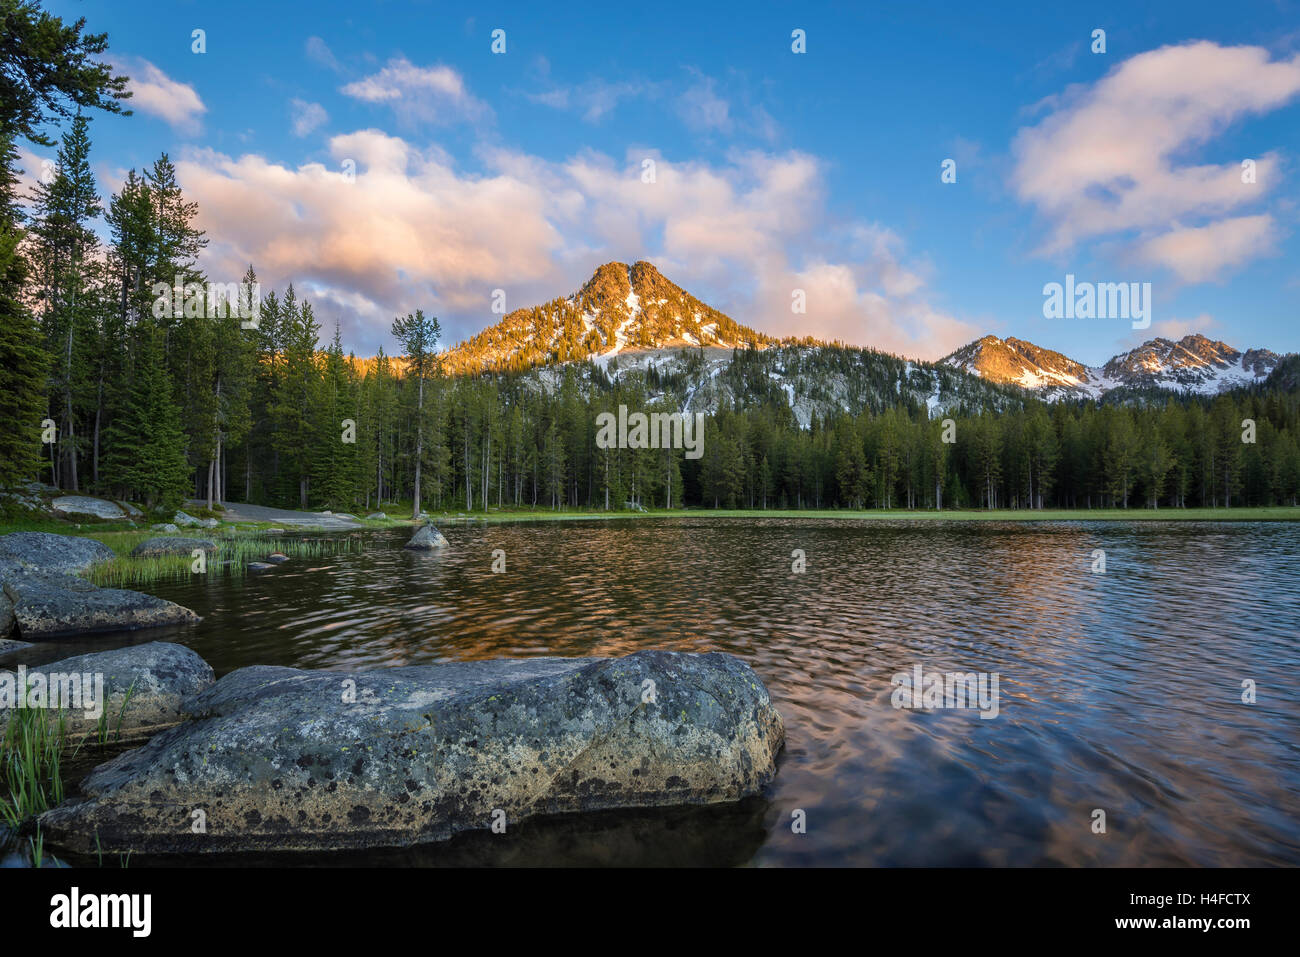 Anthony Lake and Gunsight Mountain, Elkhorn Mountains, Wallowa-Whitman National Forest, eastern Oregon. - Stock Image